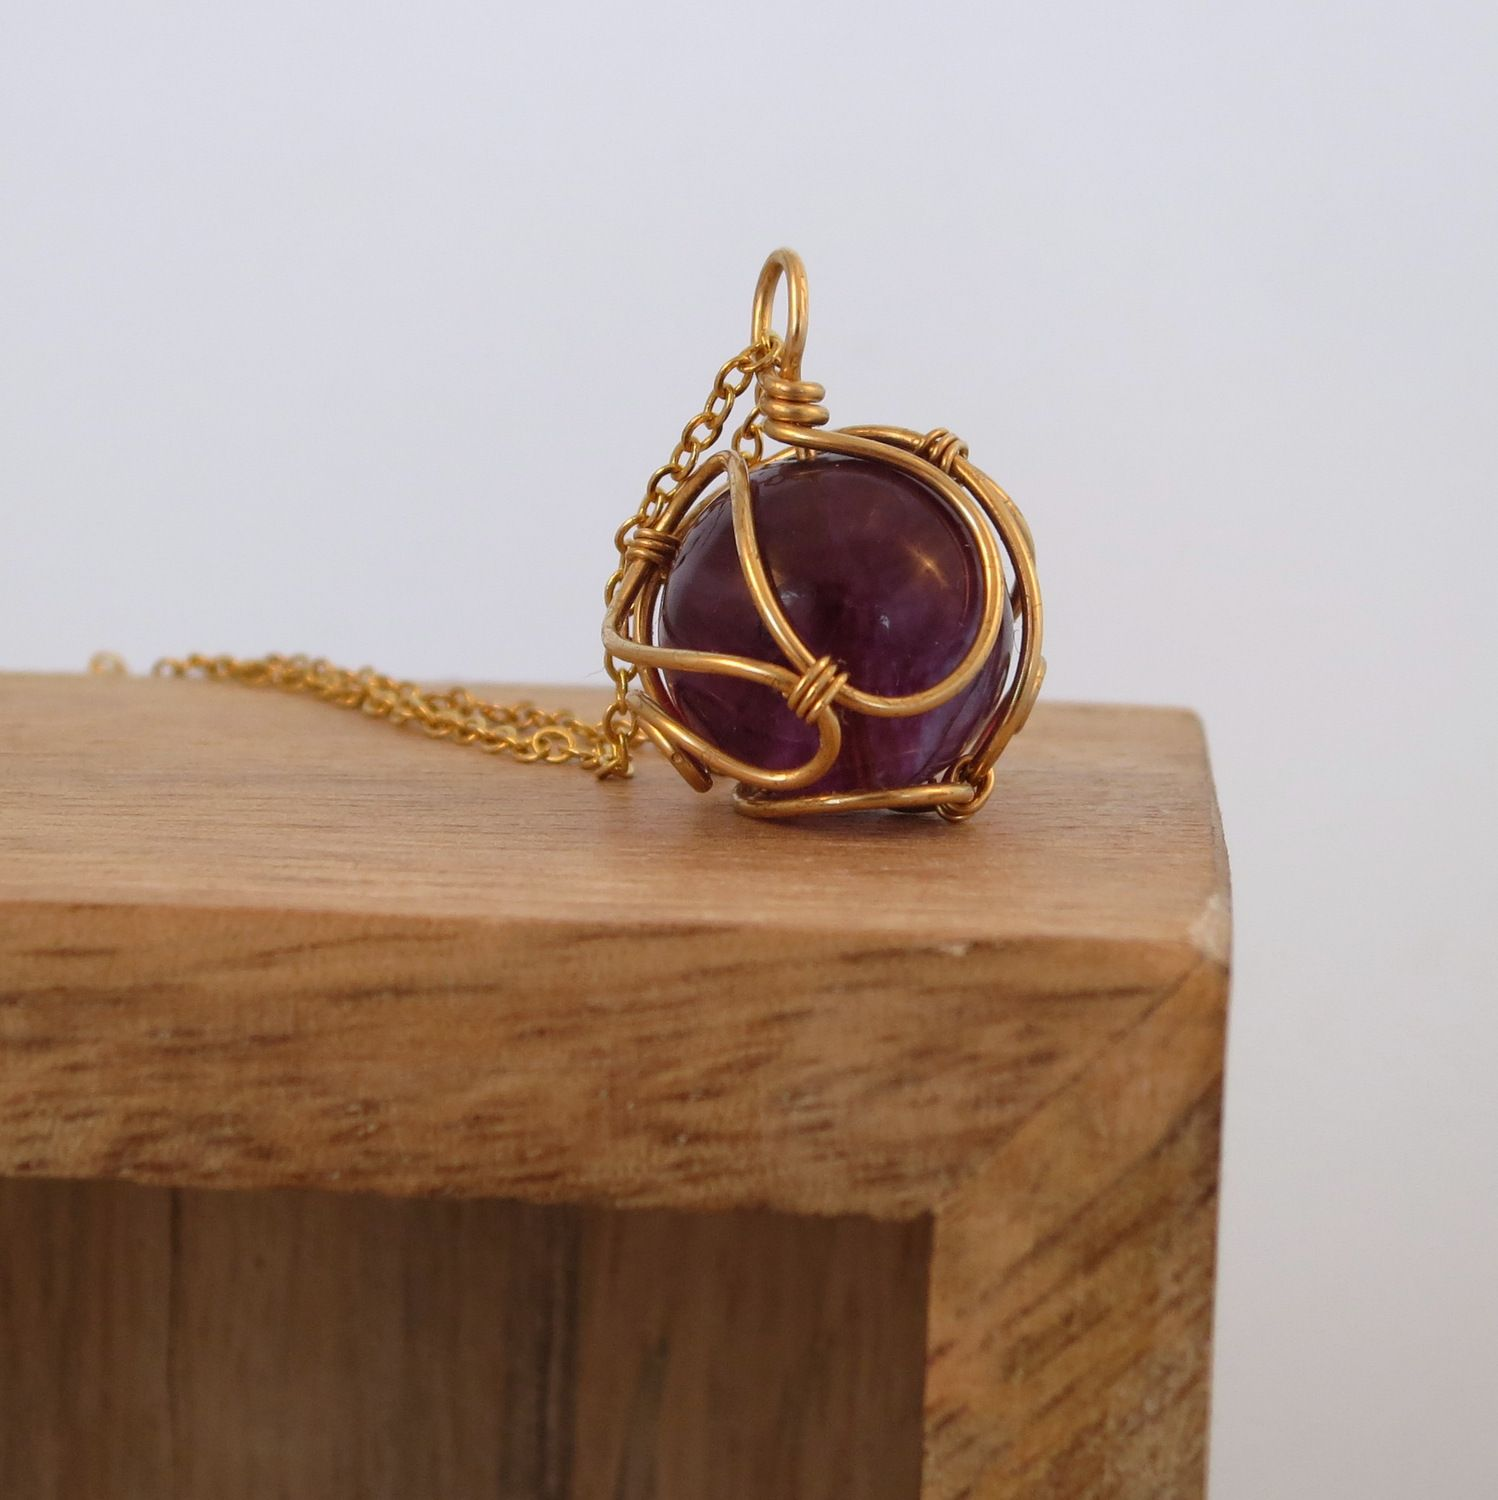 Jewelry wire cage wire center purple fluorite pendant in a brass wire cage milalika wire rh pinterest com jewelry wire gauge chart and size jewelry wire gauges keyboard keysfo Images